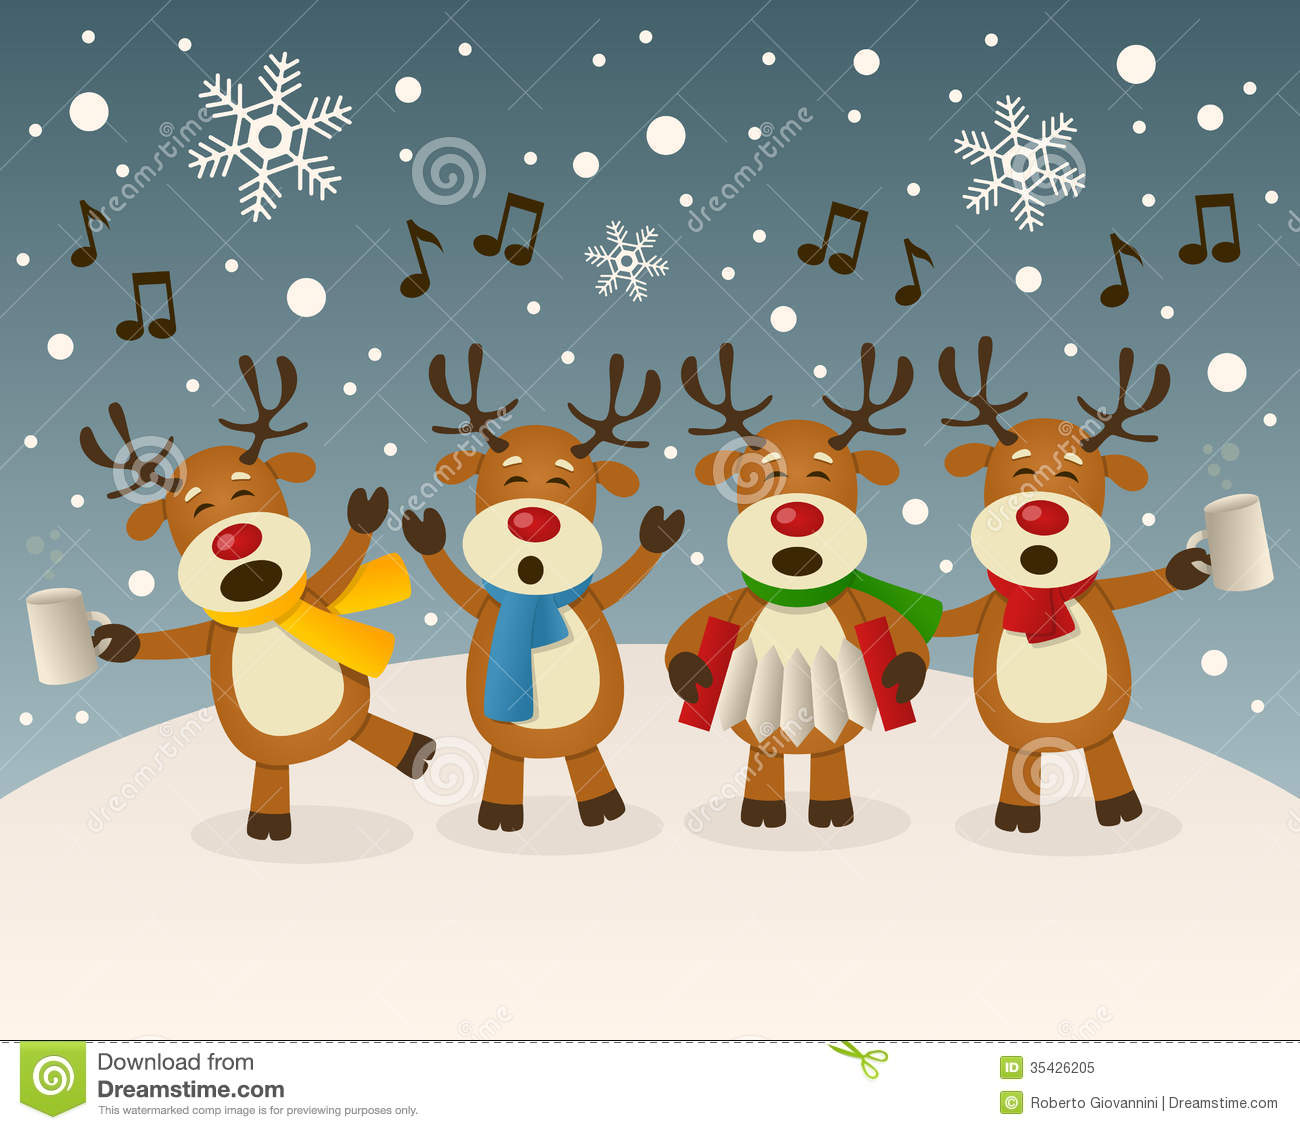 Drunk Reindeer Singing On The Snow Royalty Free Stock Photo ...